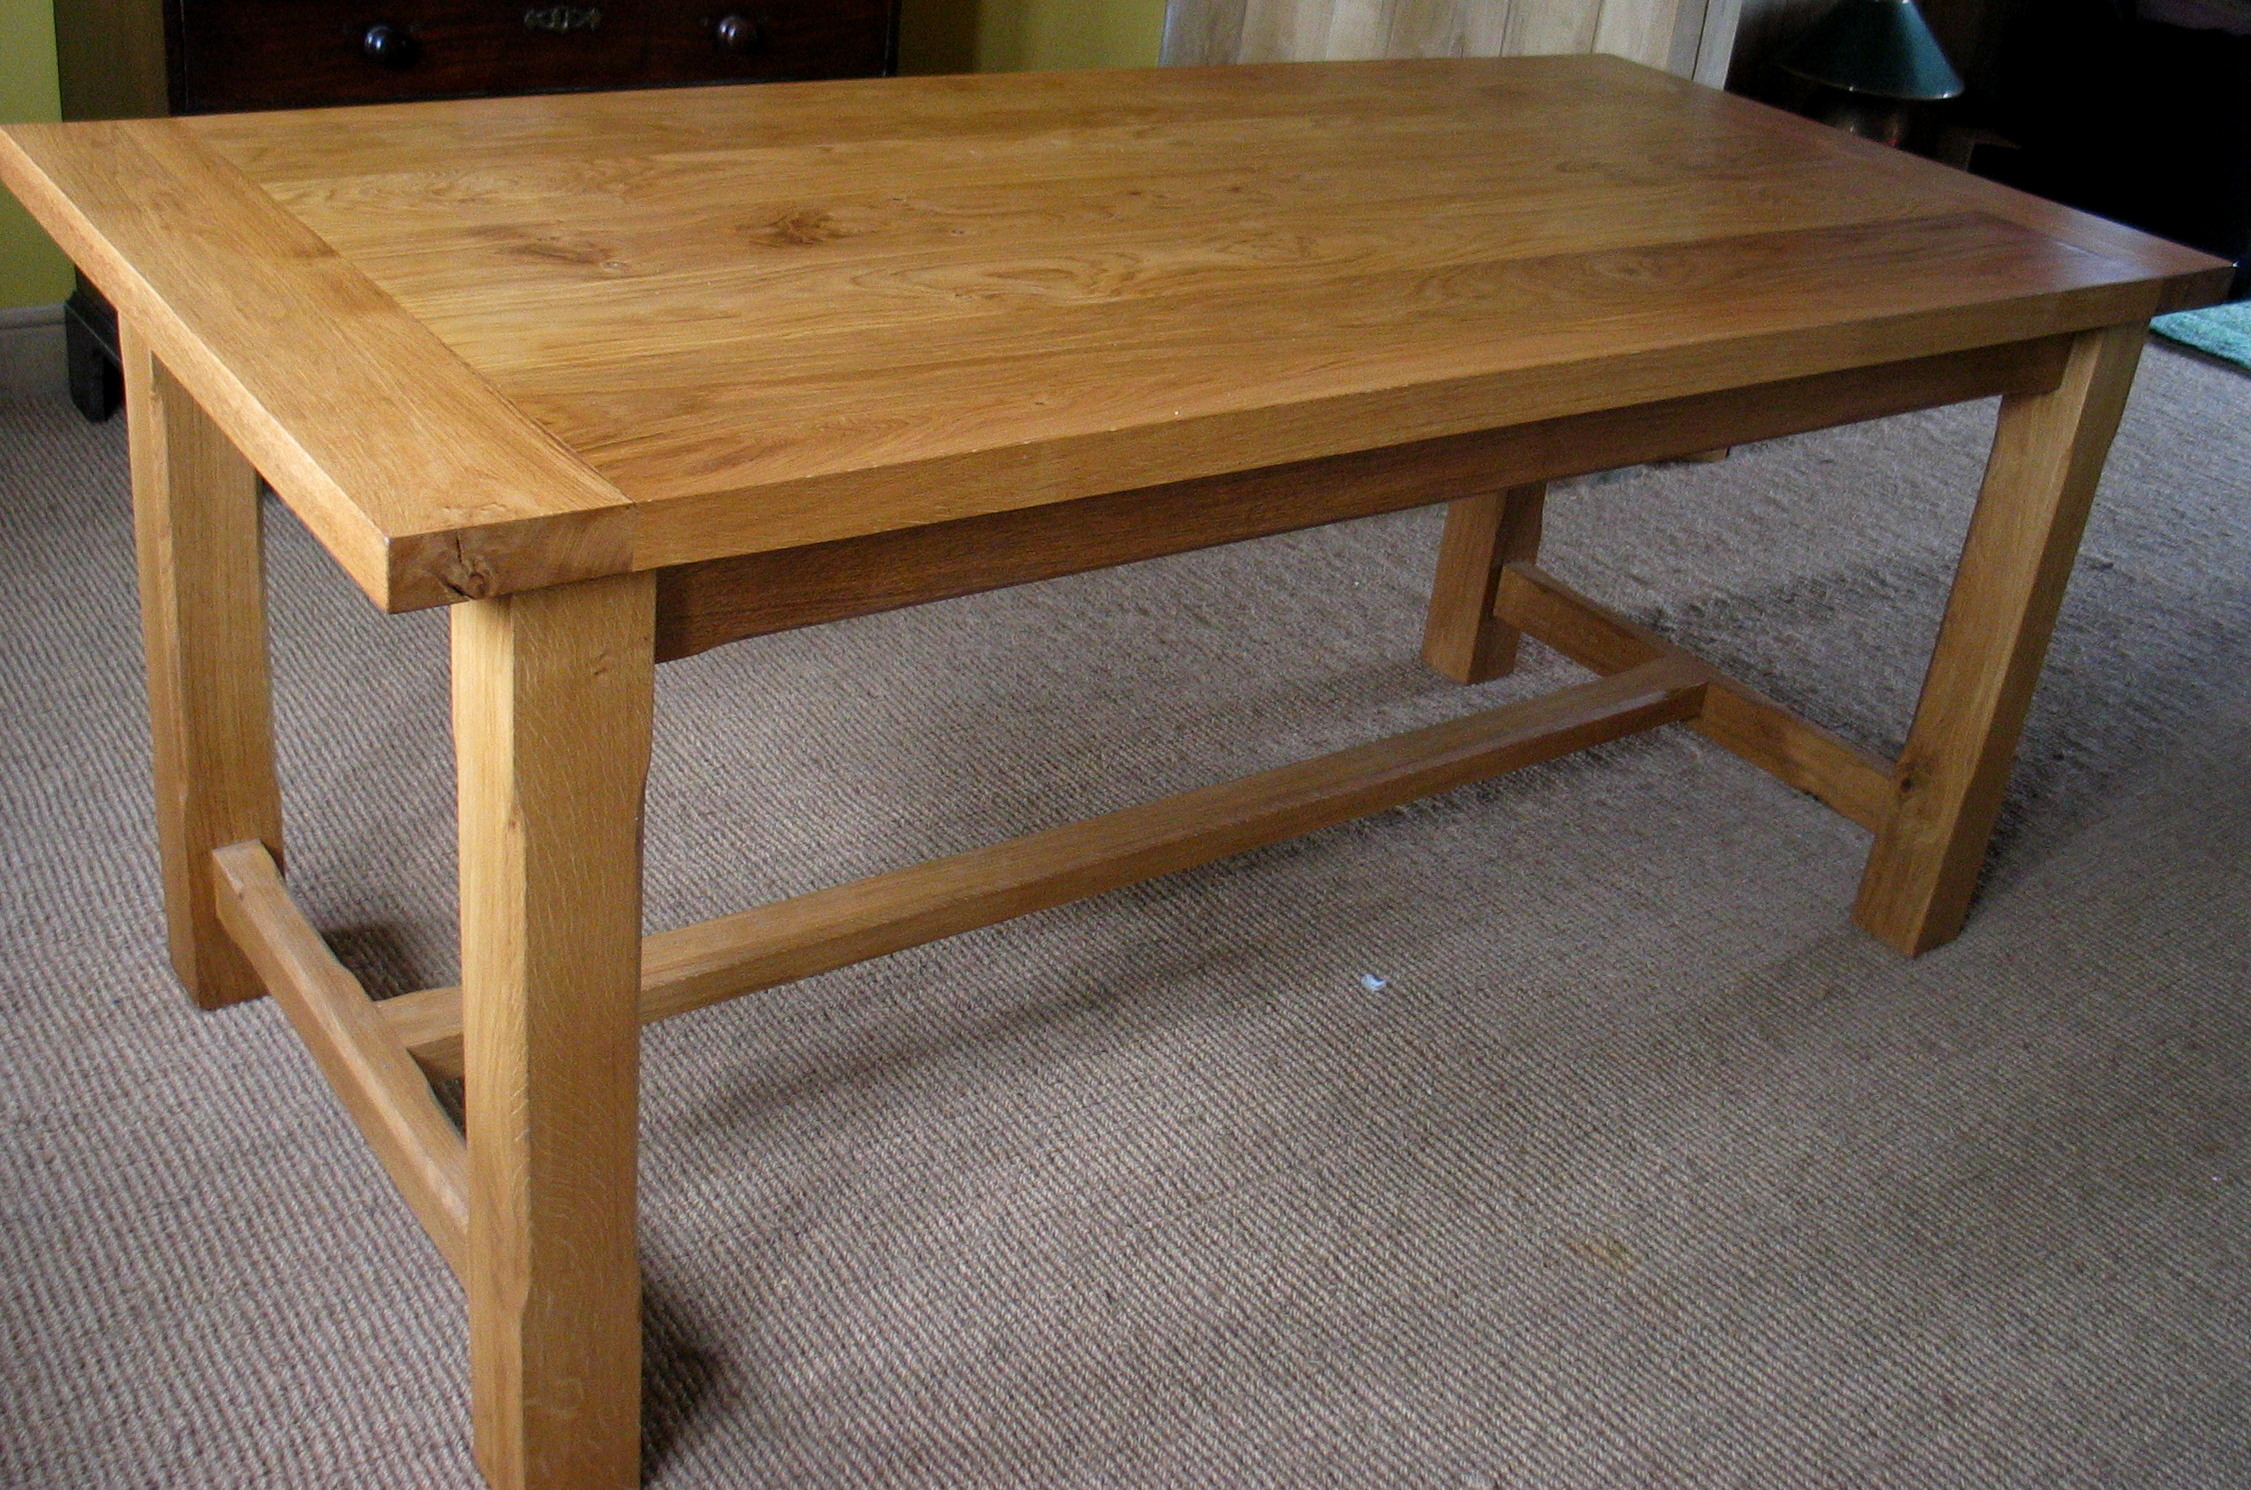 Solid Oak Dining Room Table To Accompany Your Family Dinner : Charmful Oak Dining Room Table Traditional Simple Design